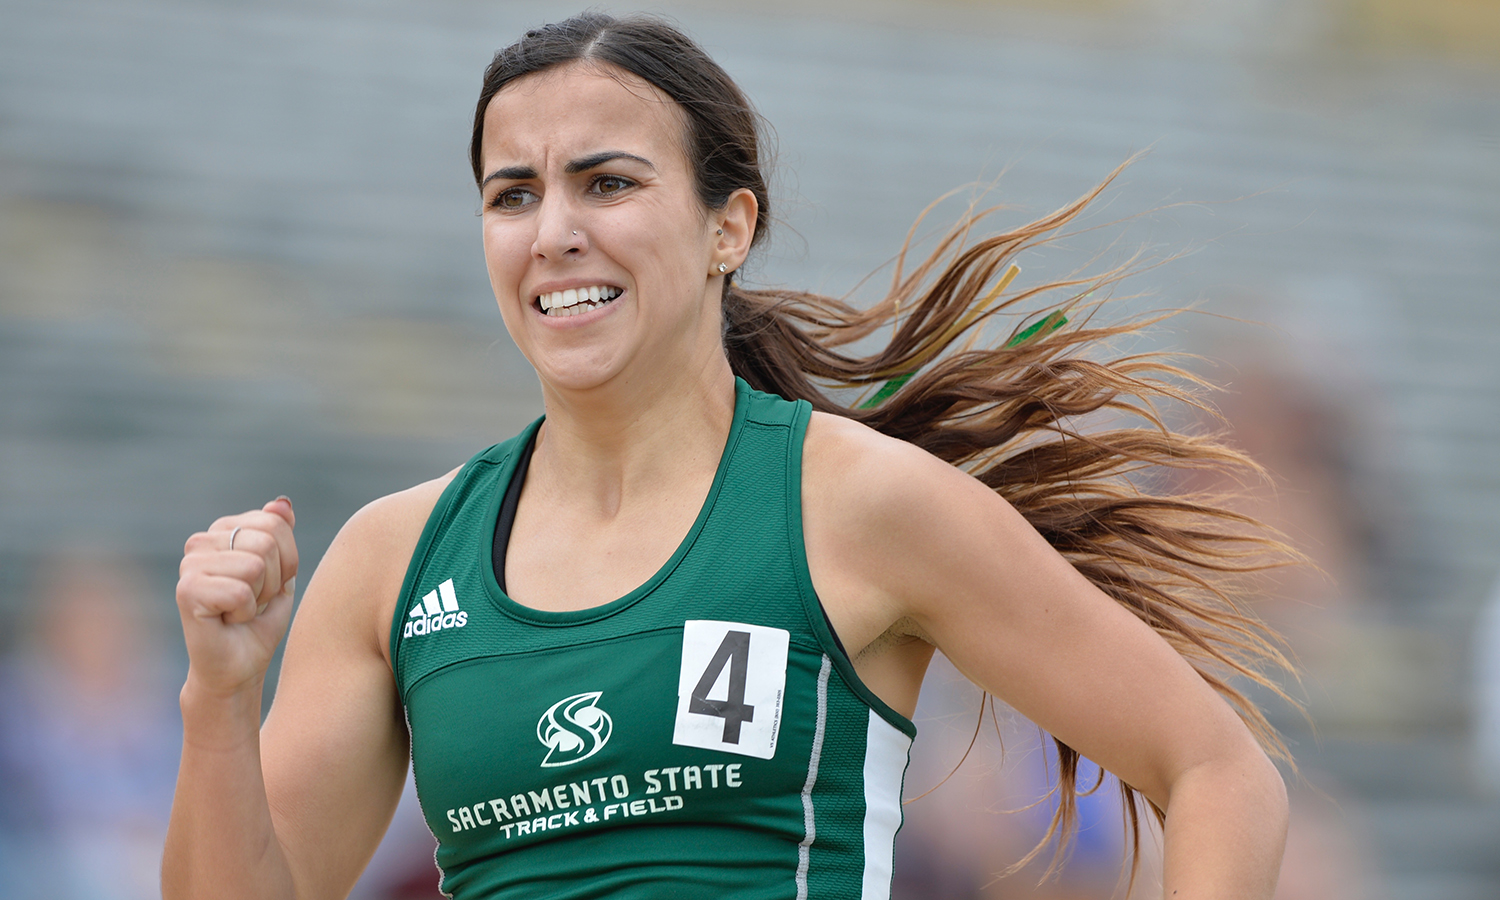 TRACK & FIELD STARTS UW INVITATIONAL WITH FOUR TOP 10 MARKS